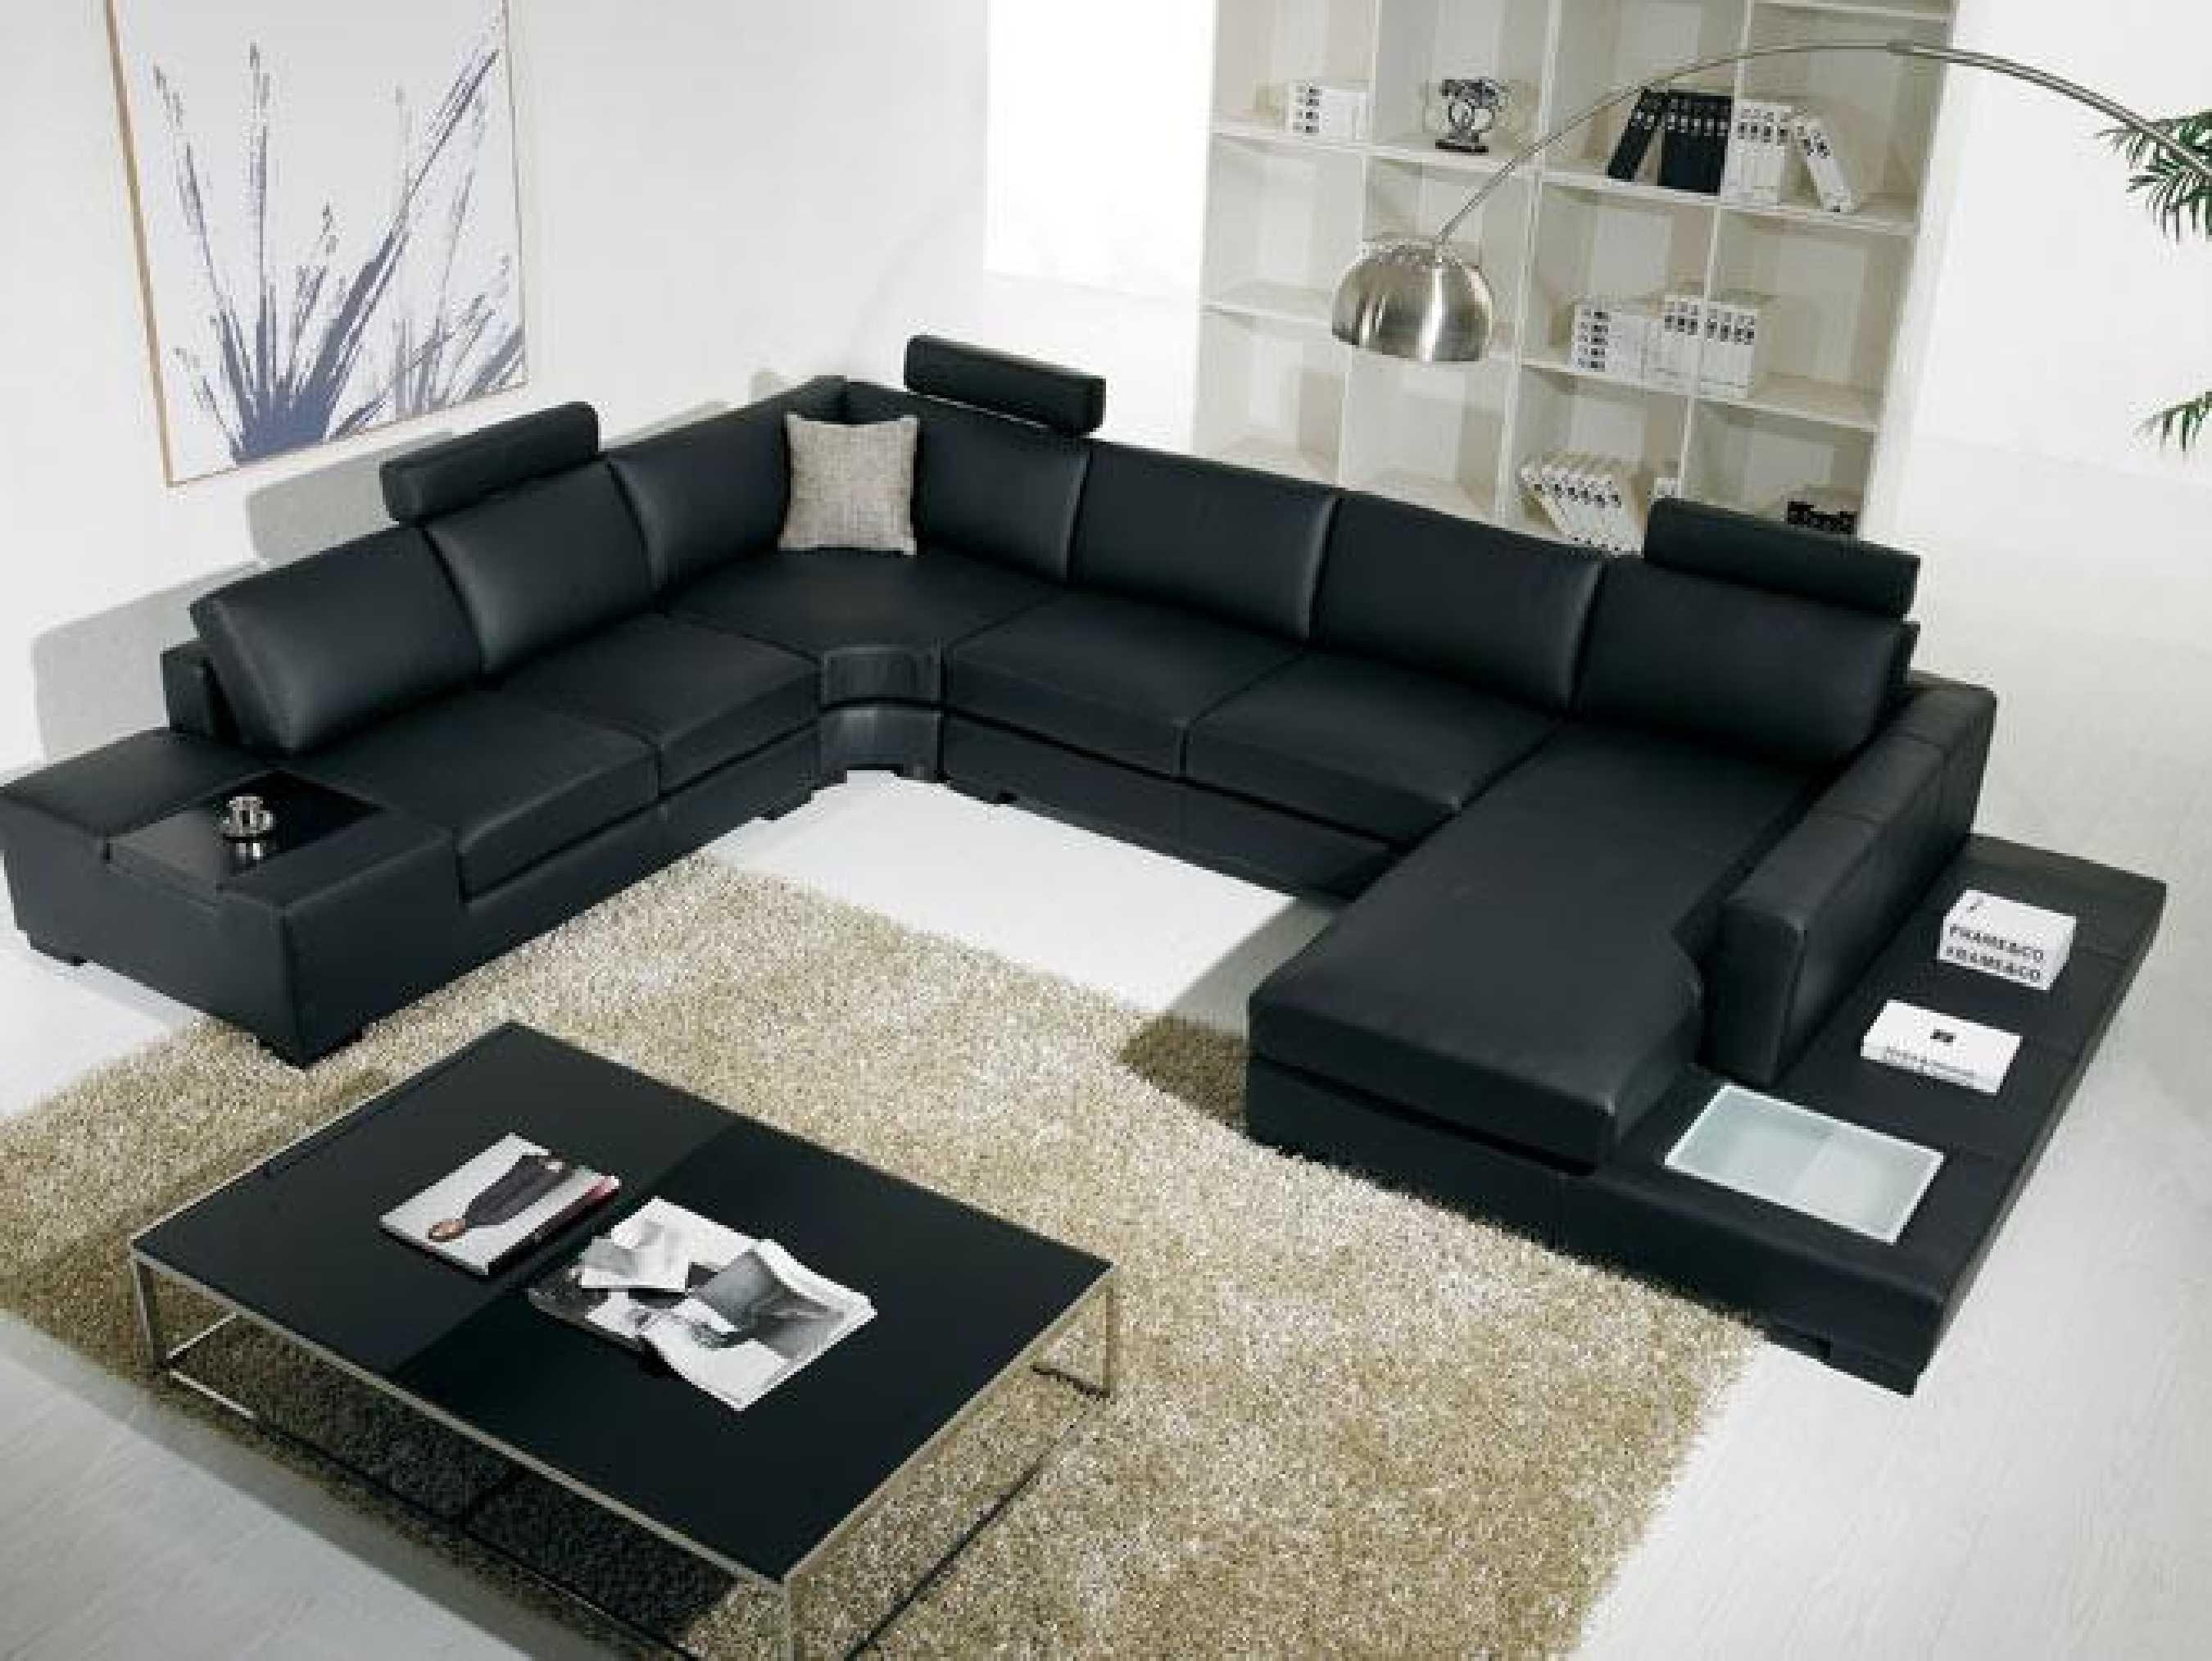 Black Modern Sectional Sofa With End Table Corner – S3Net With Regard To Black Modern Sectional Sofas (View 9 of 20)